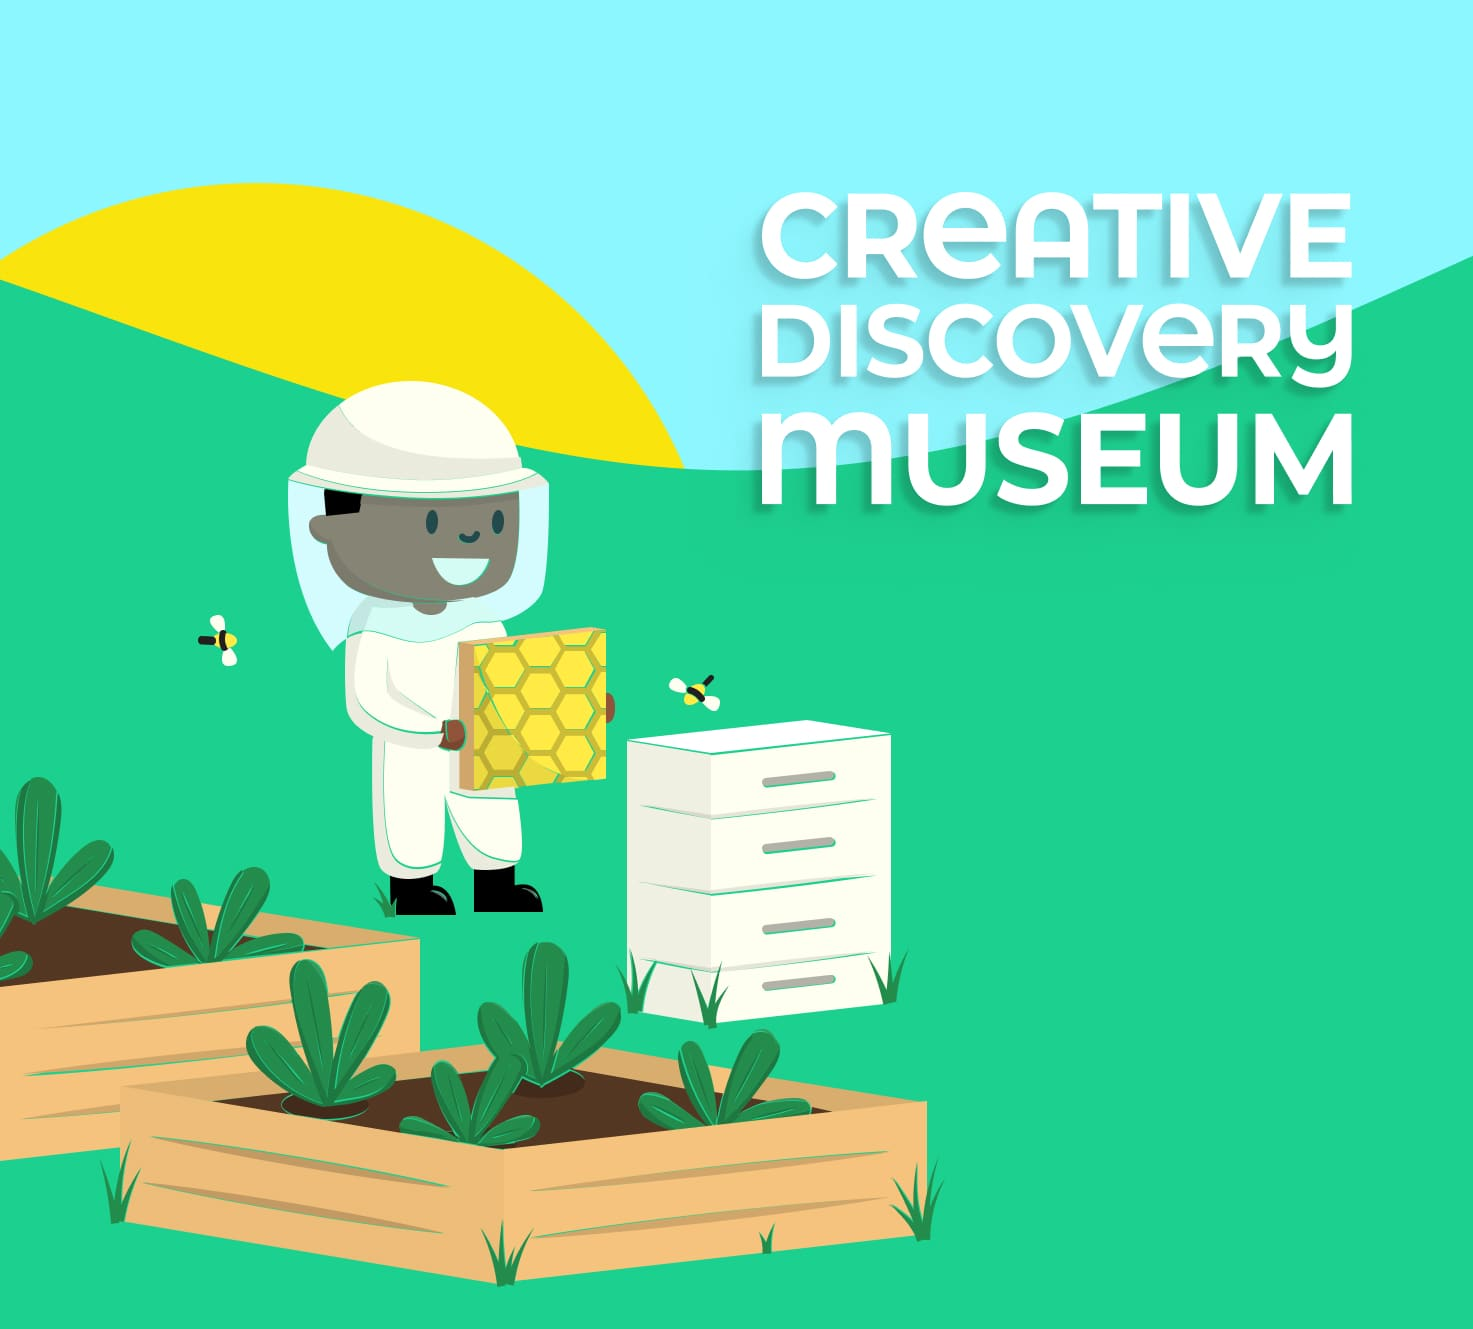 A flat-style illustration of a kid as a beekeeper and the Creative Discovery Museum logo.